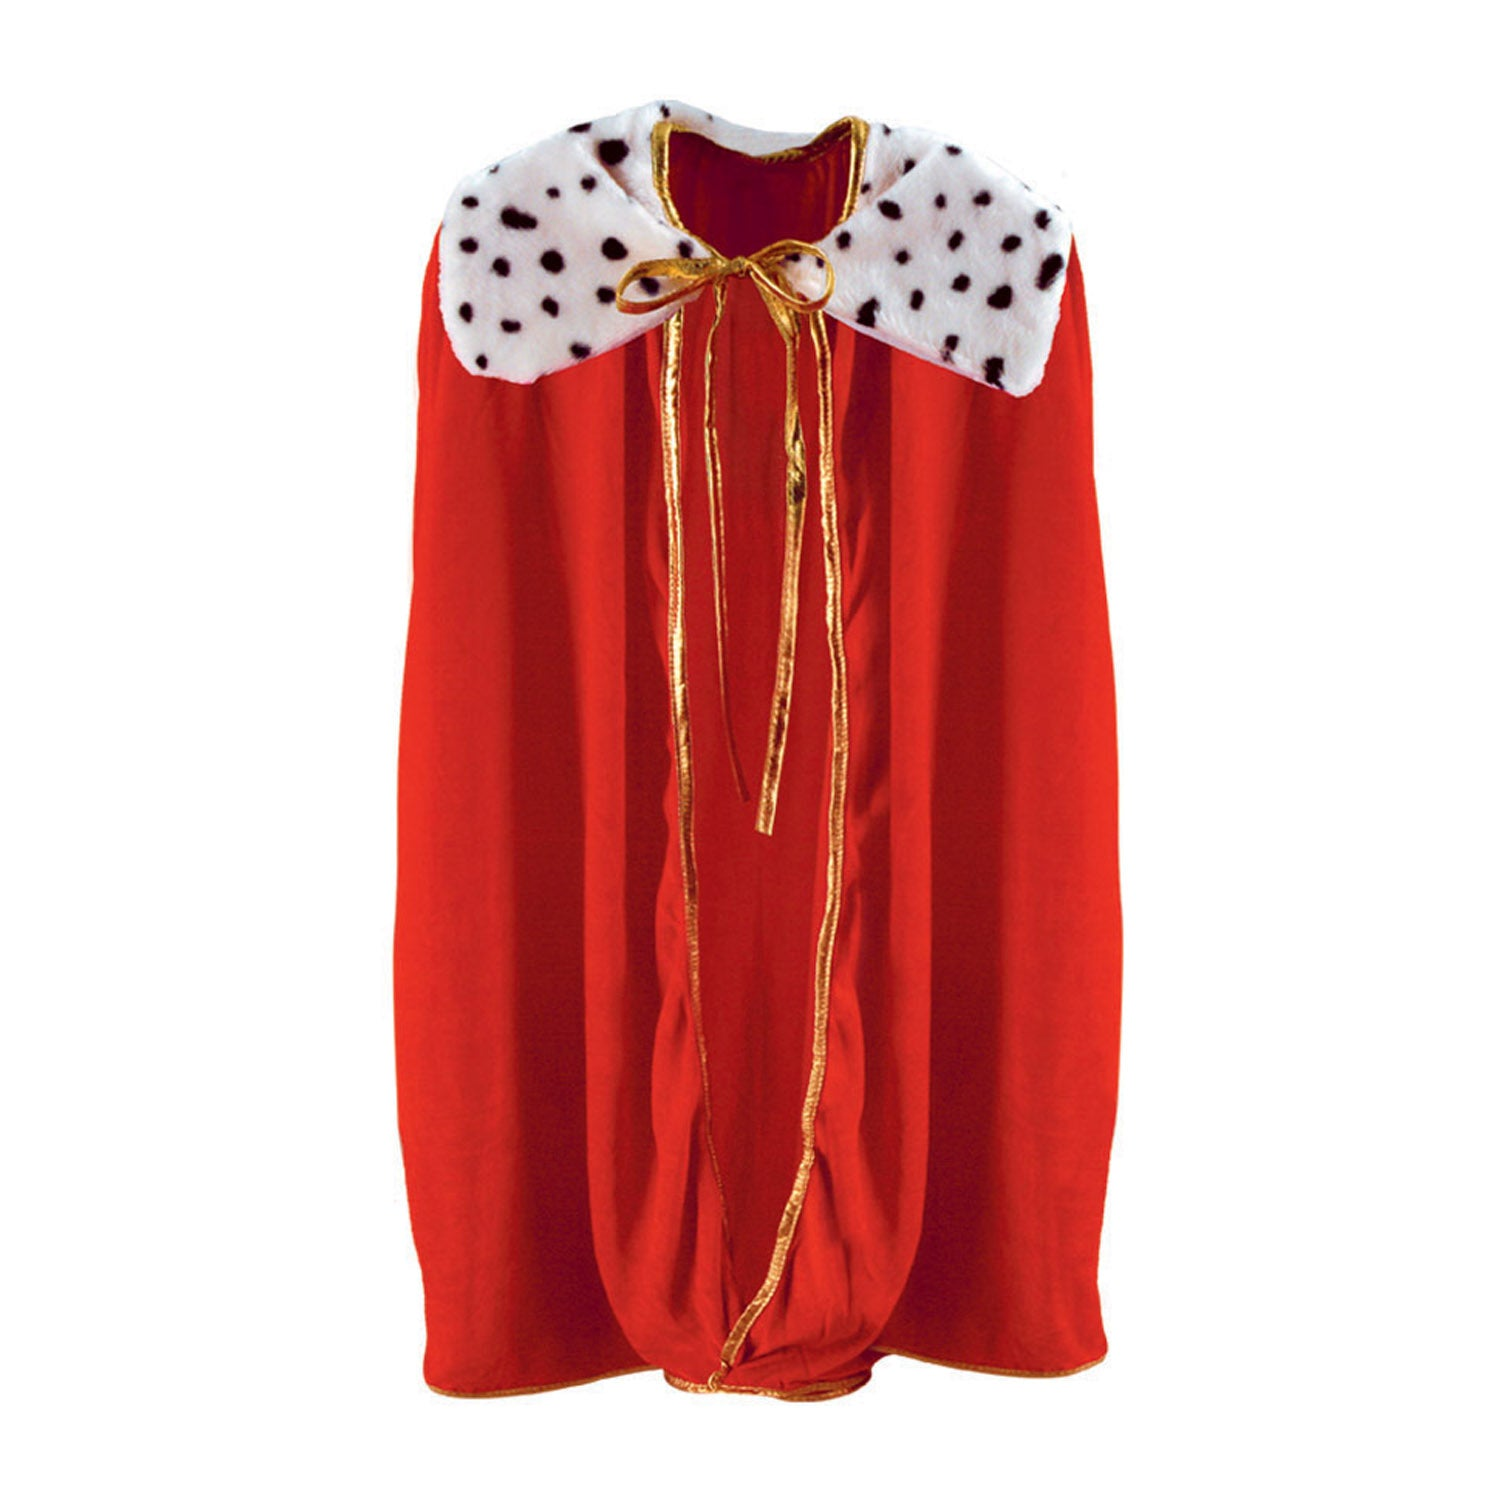 Child King/Queen Robe, red by Beistle - Mardi Gras Theme Decorations